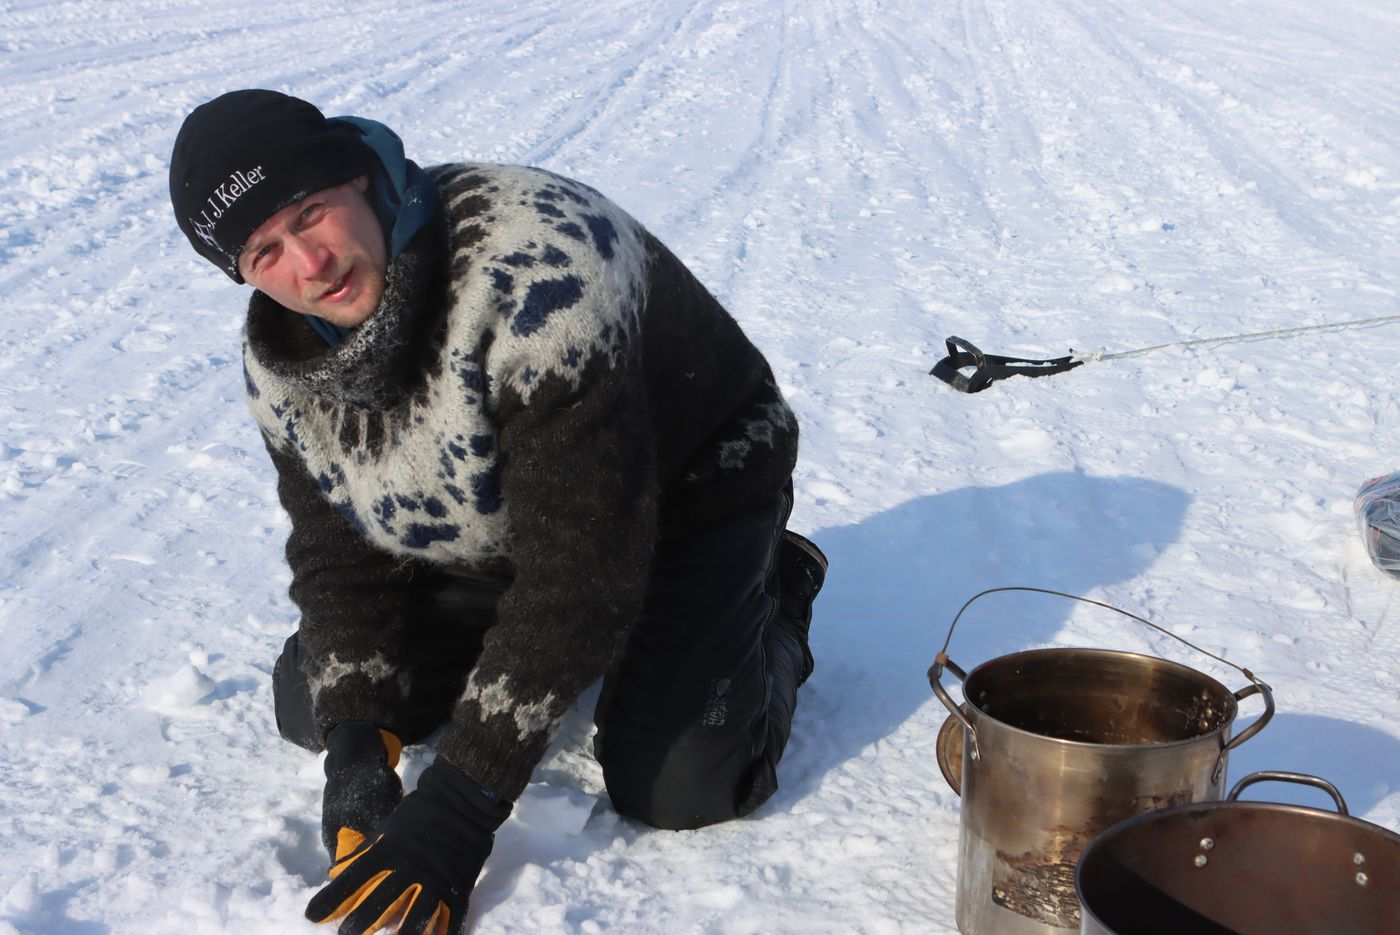 Dallas Seavey uses a knife to cut blocks of snow to melt in his cooker feeding his dogs during a rest break at the Iditarod checkpoint on Thursday. (Zachariah Hughes/for ADN)